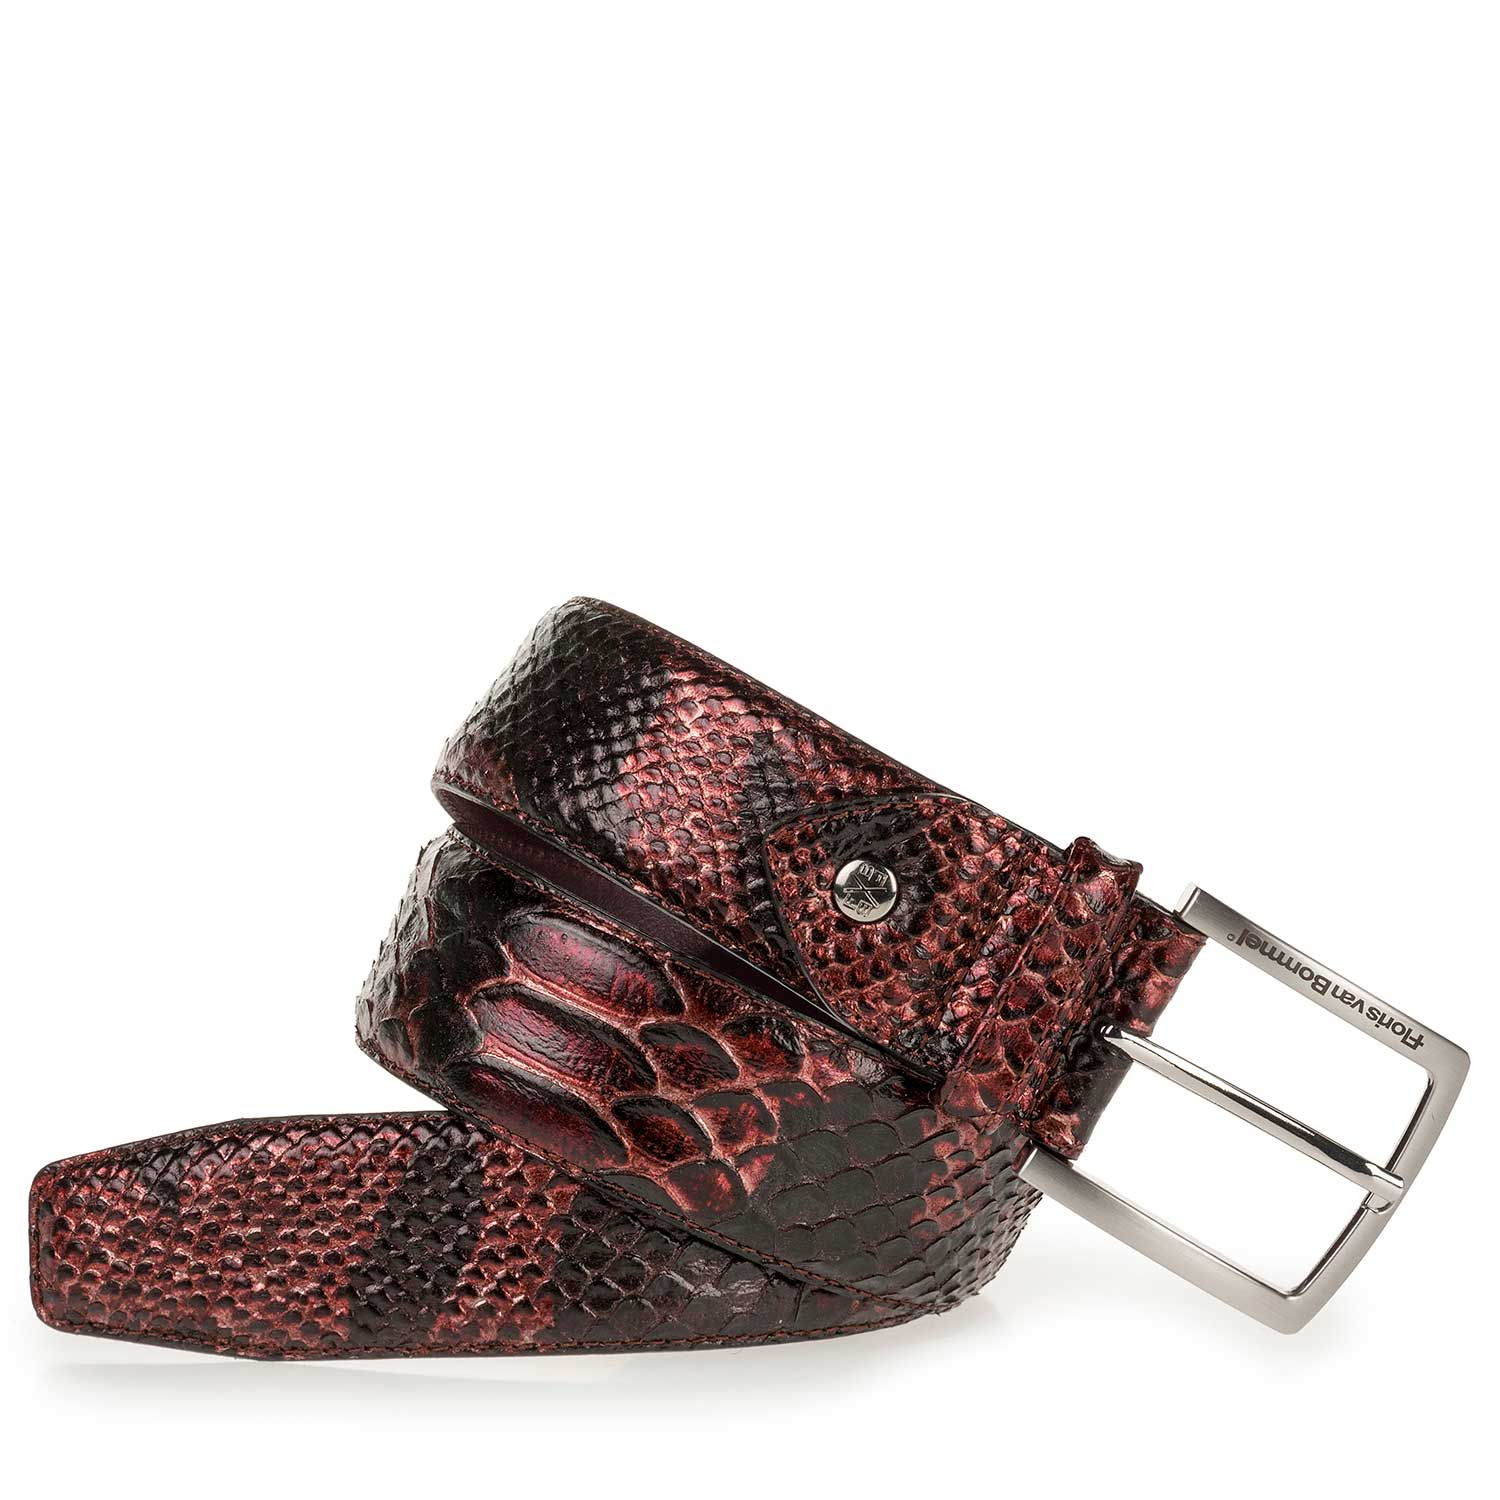 75189/36 - Red-brown leather belt with snake print